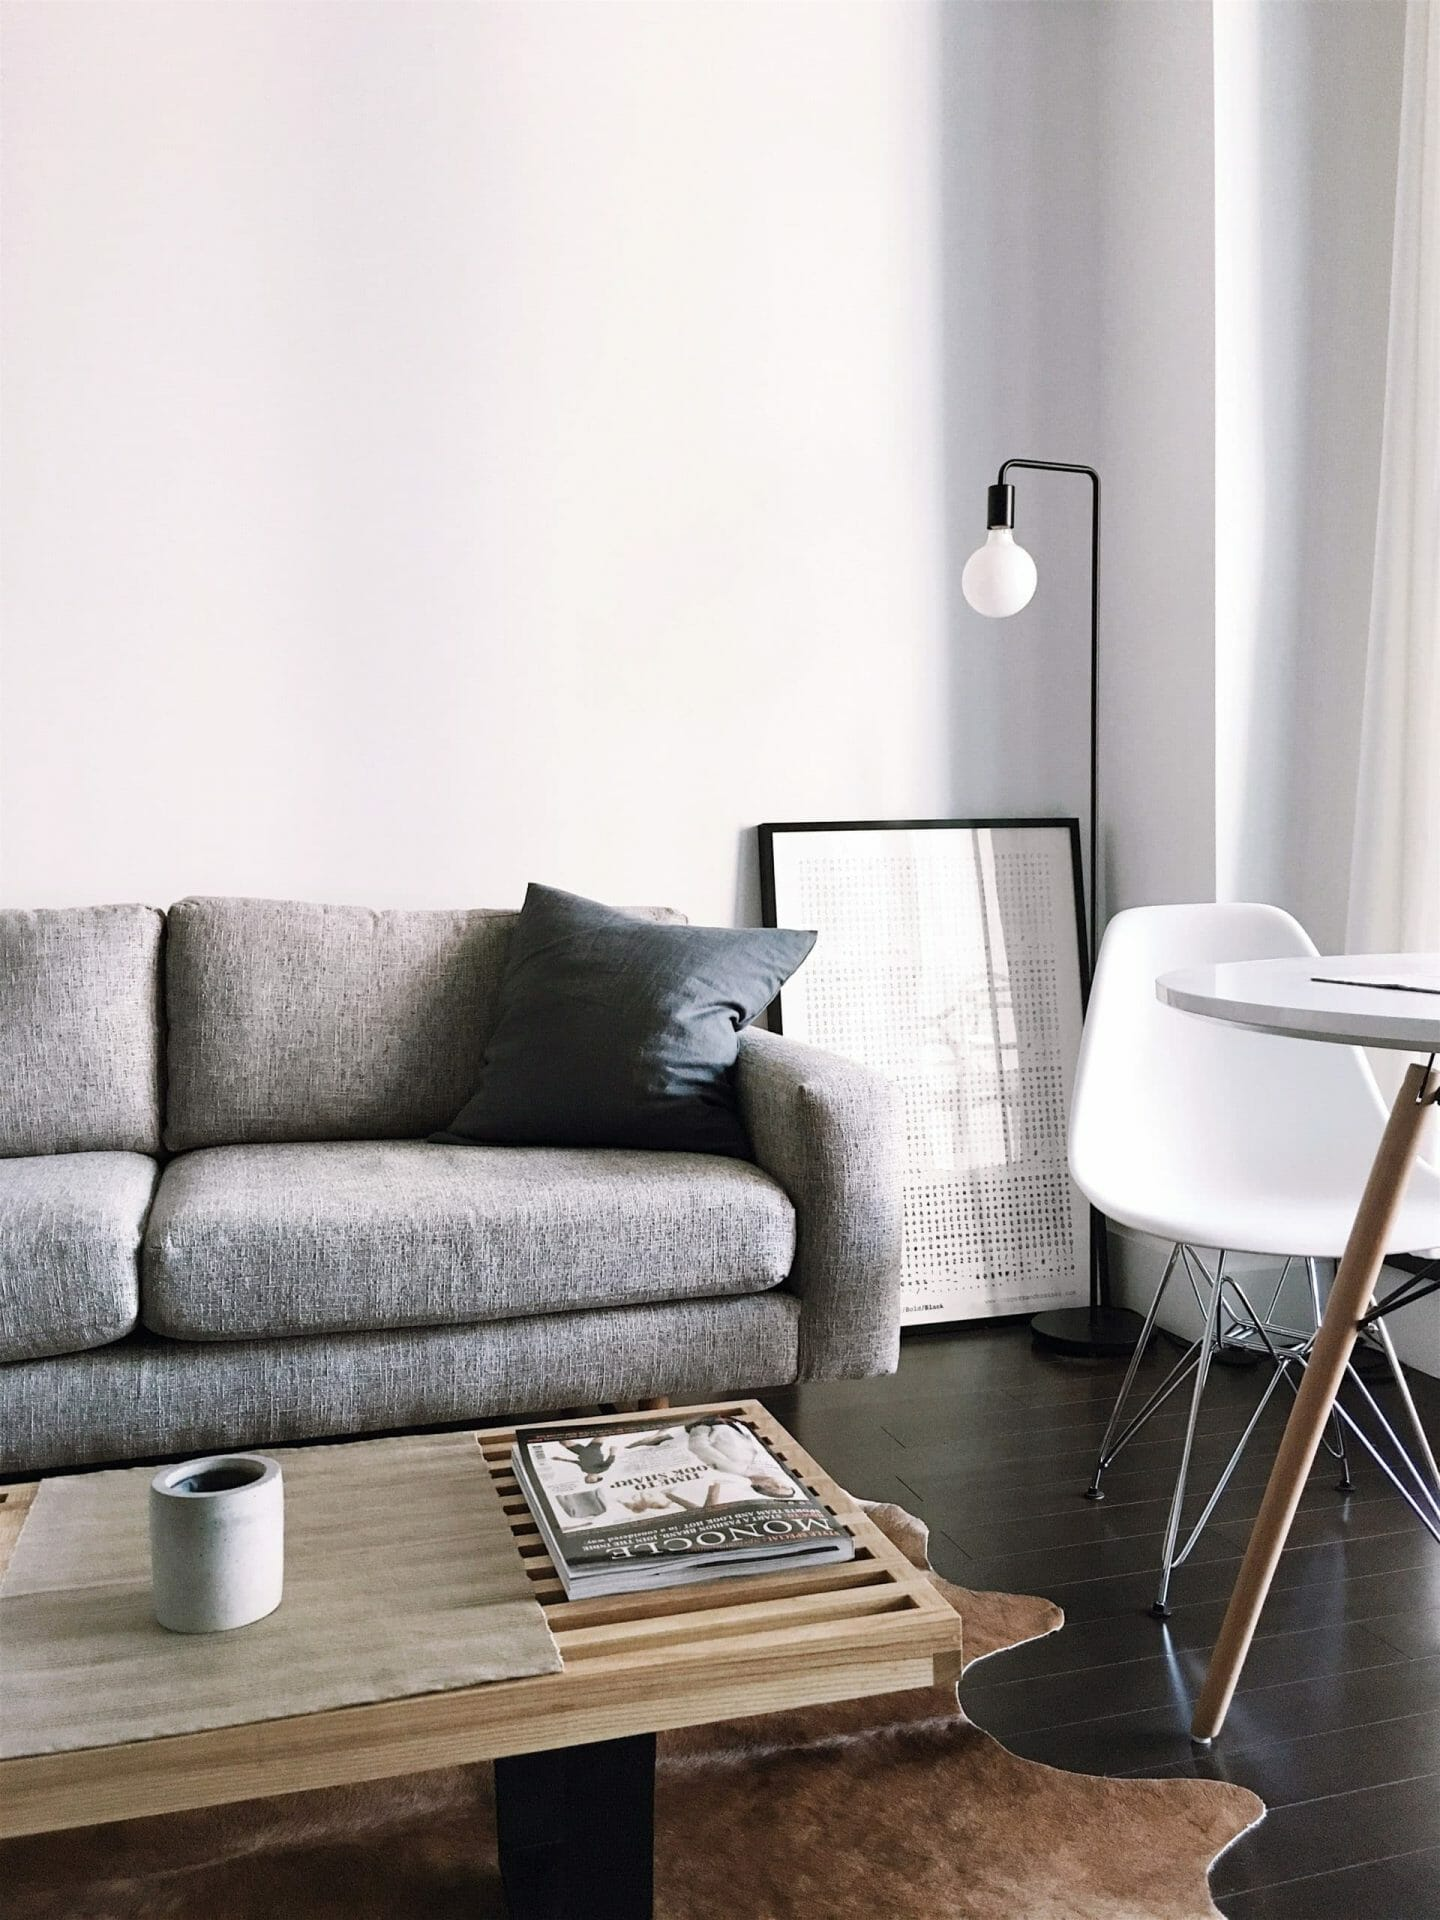 Picture of living room with couch and lamp for Real Estate News for Investors Podcast Episode #581